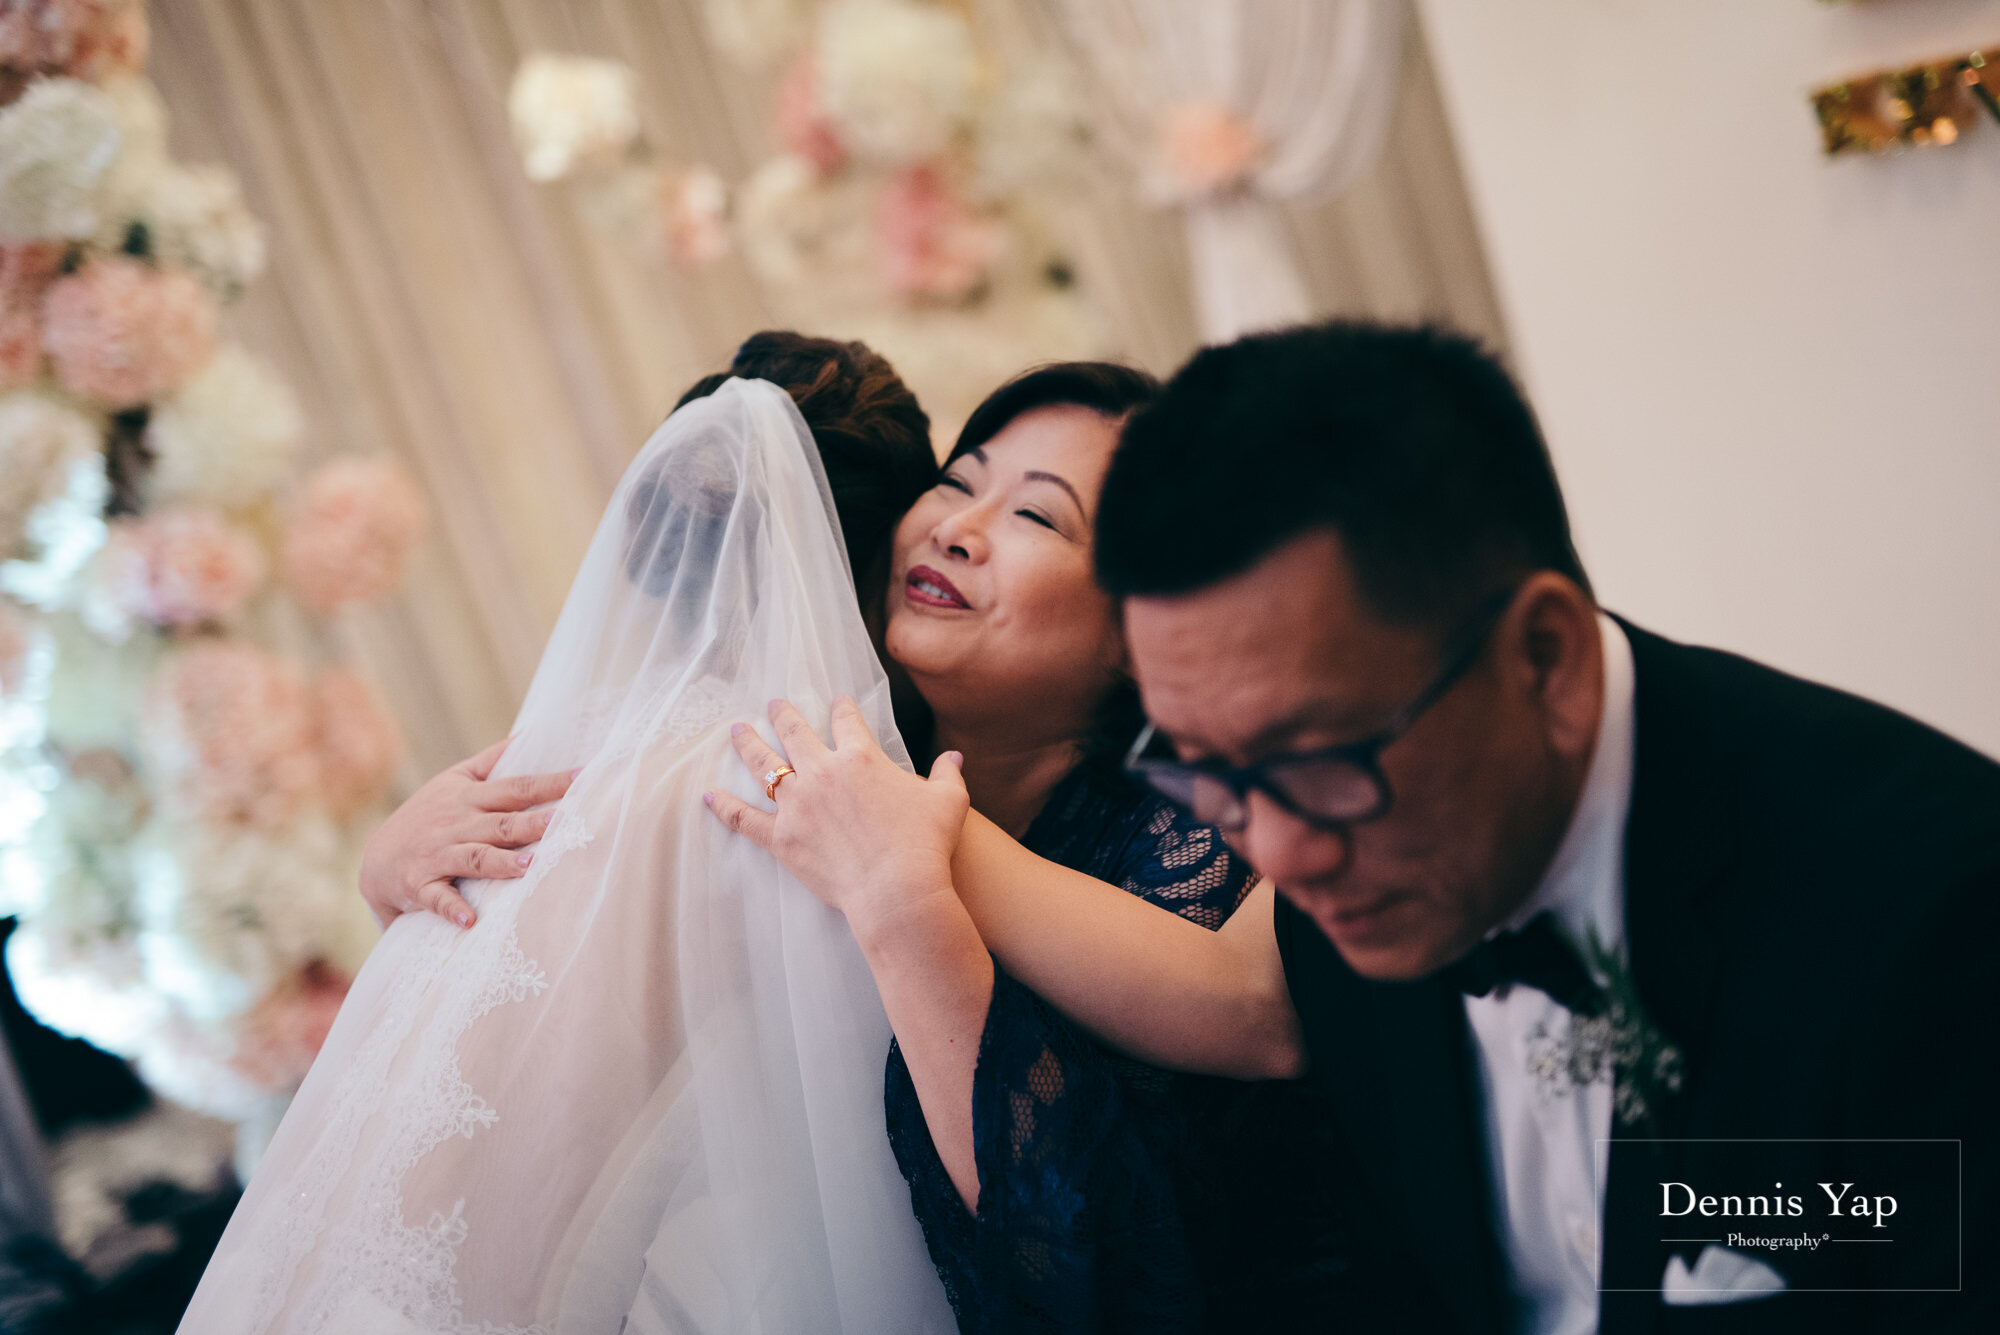 kevan khing wei wedding day hilton kuala lumpur vow exchange ceremony dennis yap photography malaysia top wedding photographer-30.jpg